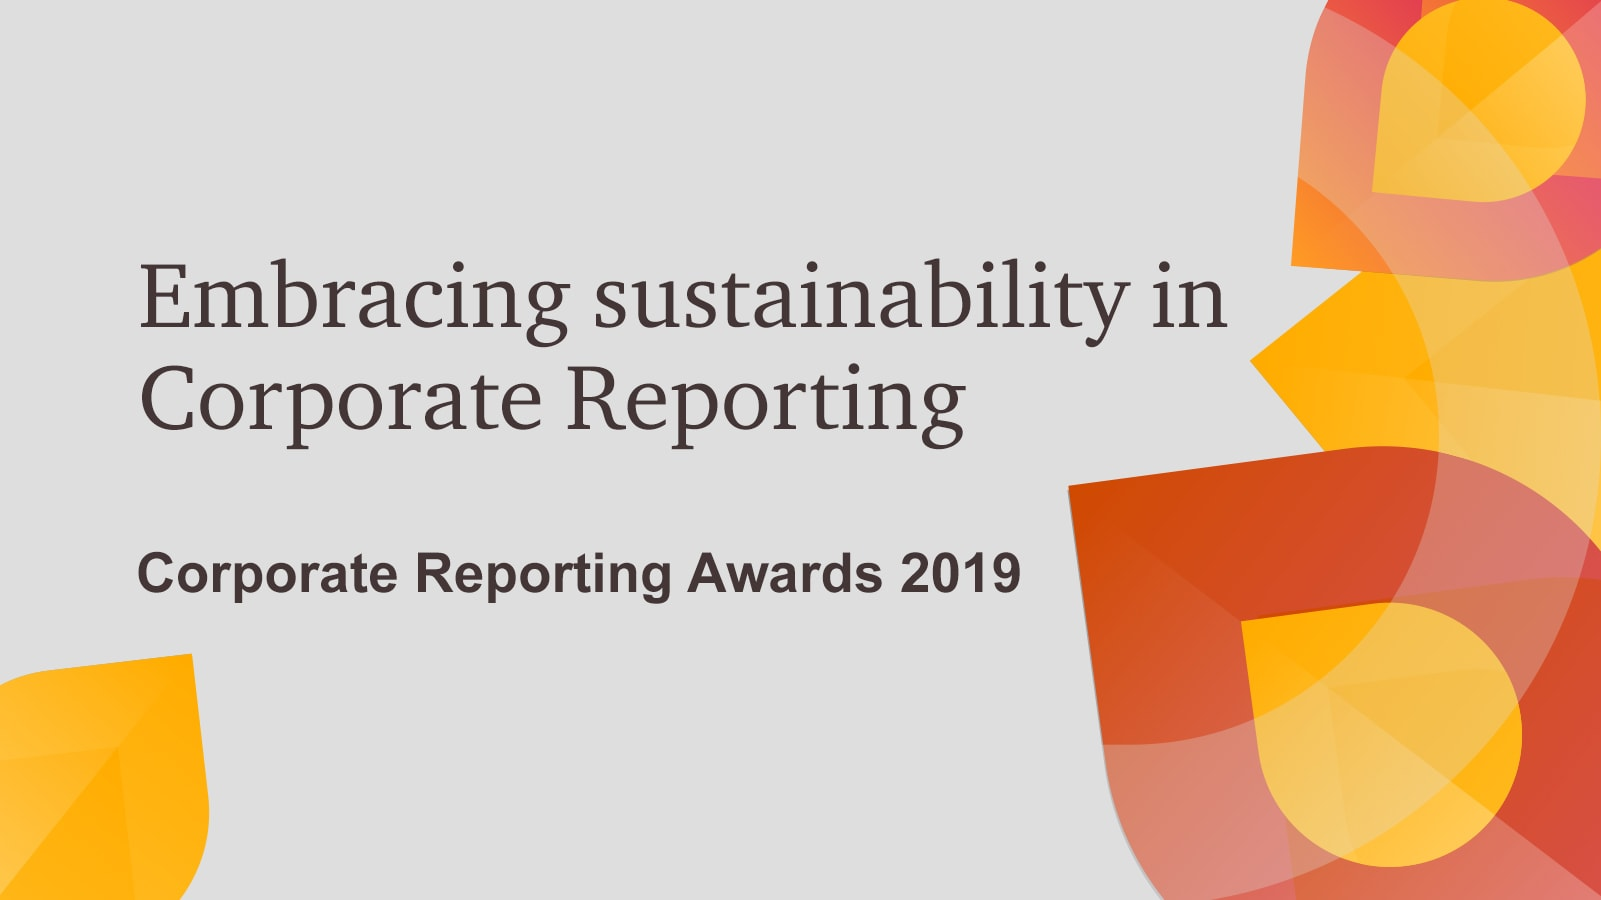 4c05a65a5fd Embracing sustainability in Corporate Reporting Awards night on 21 March  2019